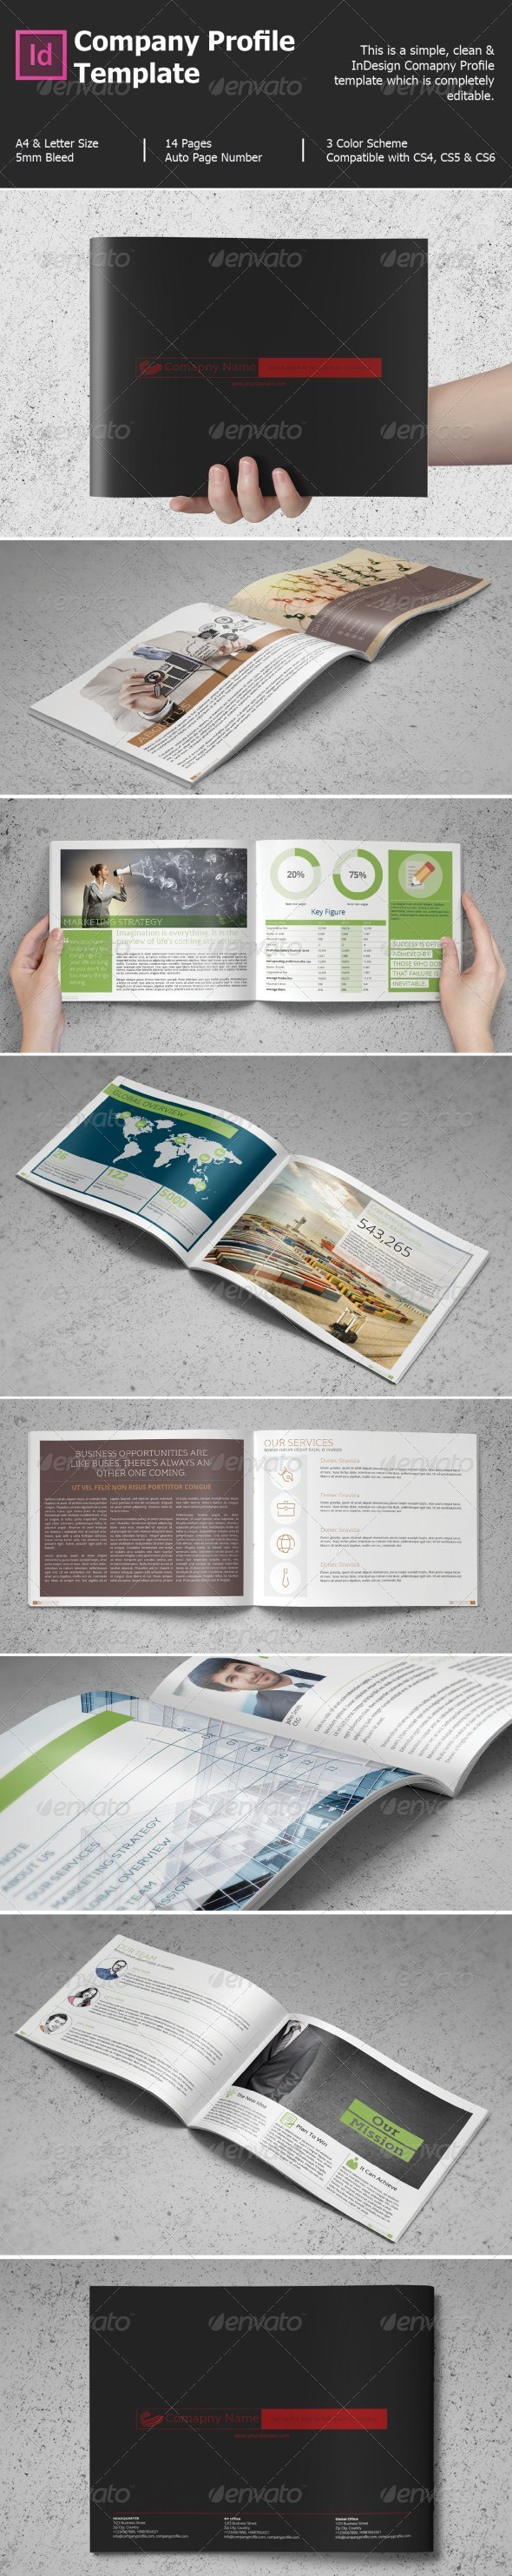 GraphicRiver Company Profile Template 8390086